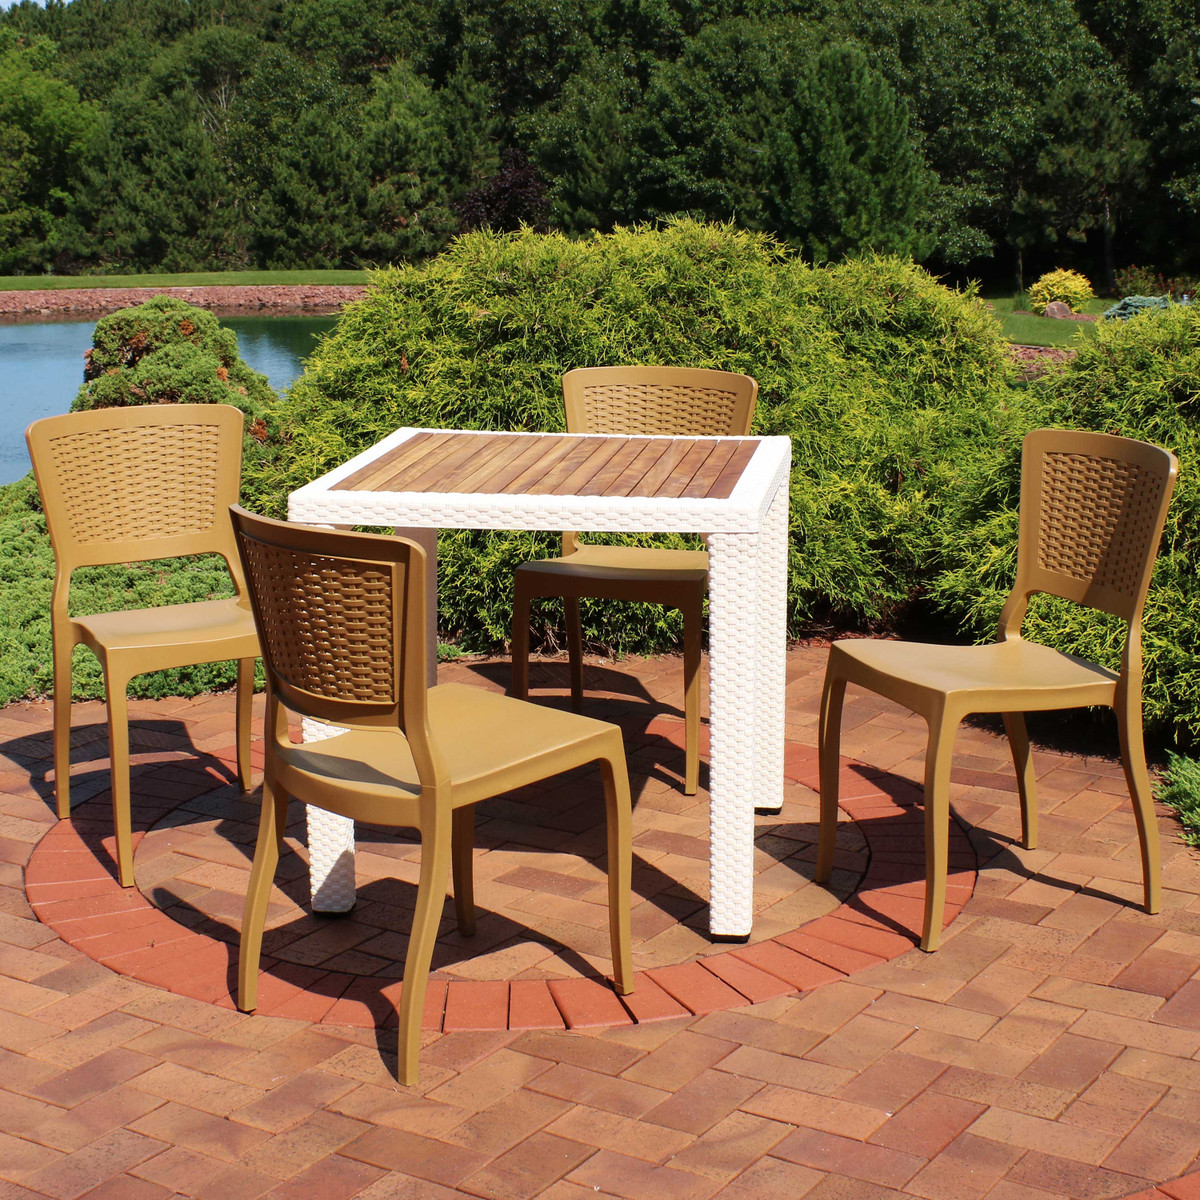 Sunnydaze All Weather Hewitt 5 Piece Patio Furniture Dining Set Commercial Grade Indoor Outdoor Use Wood Color